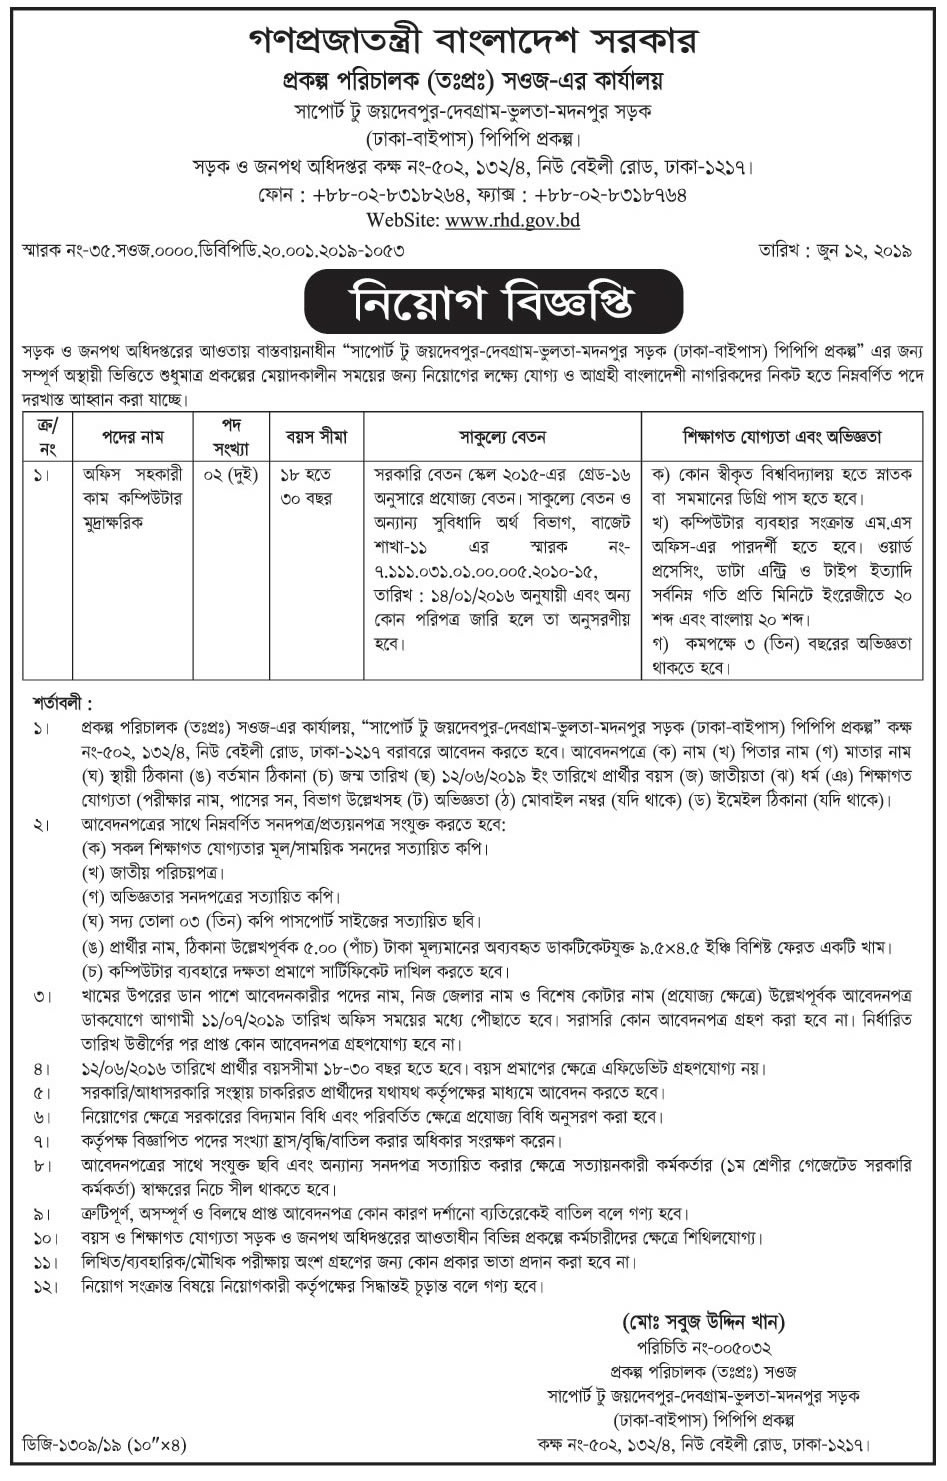 Roads And Highways Department Job Circular 2019